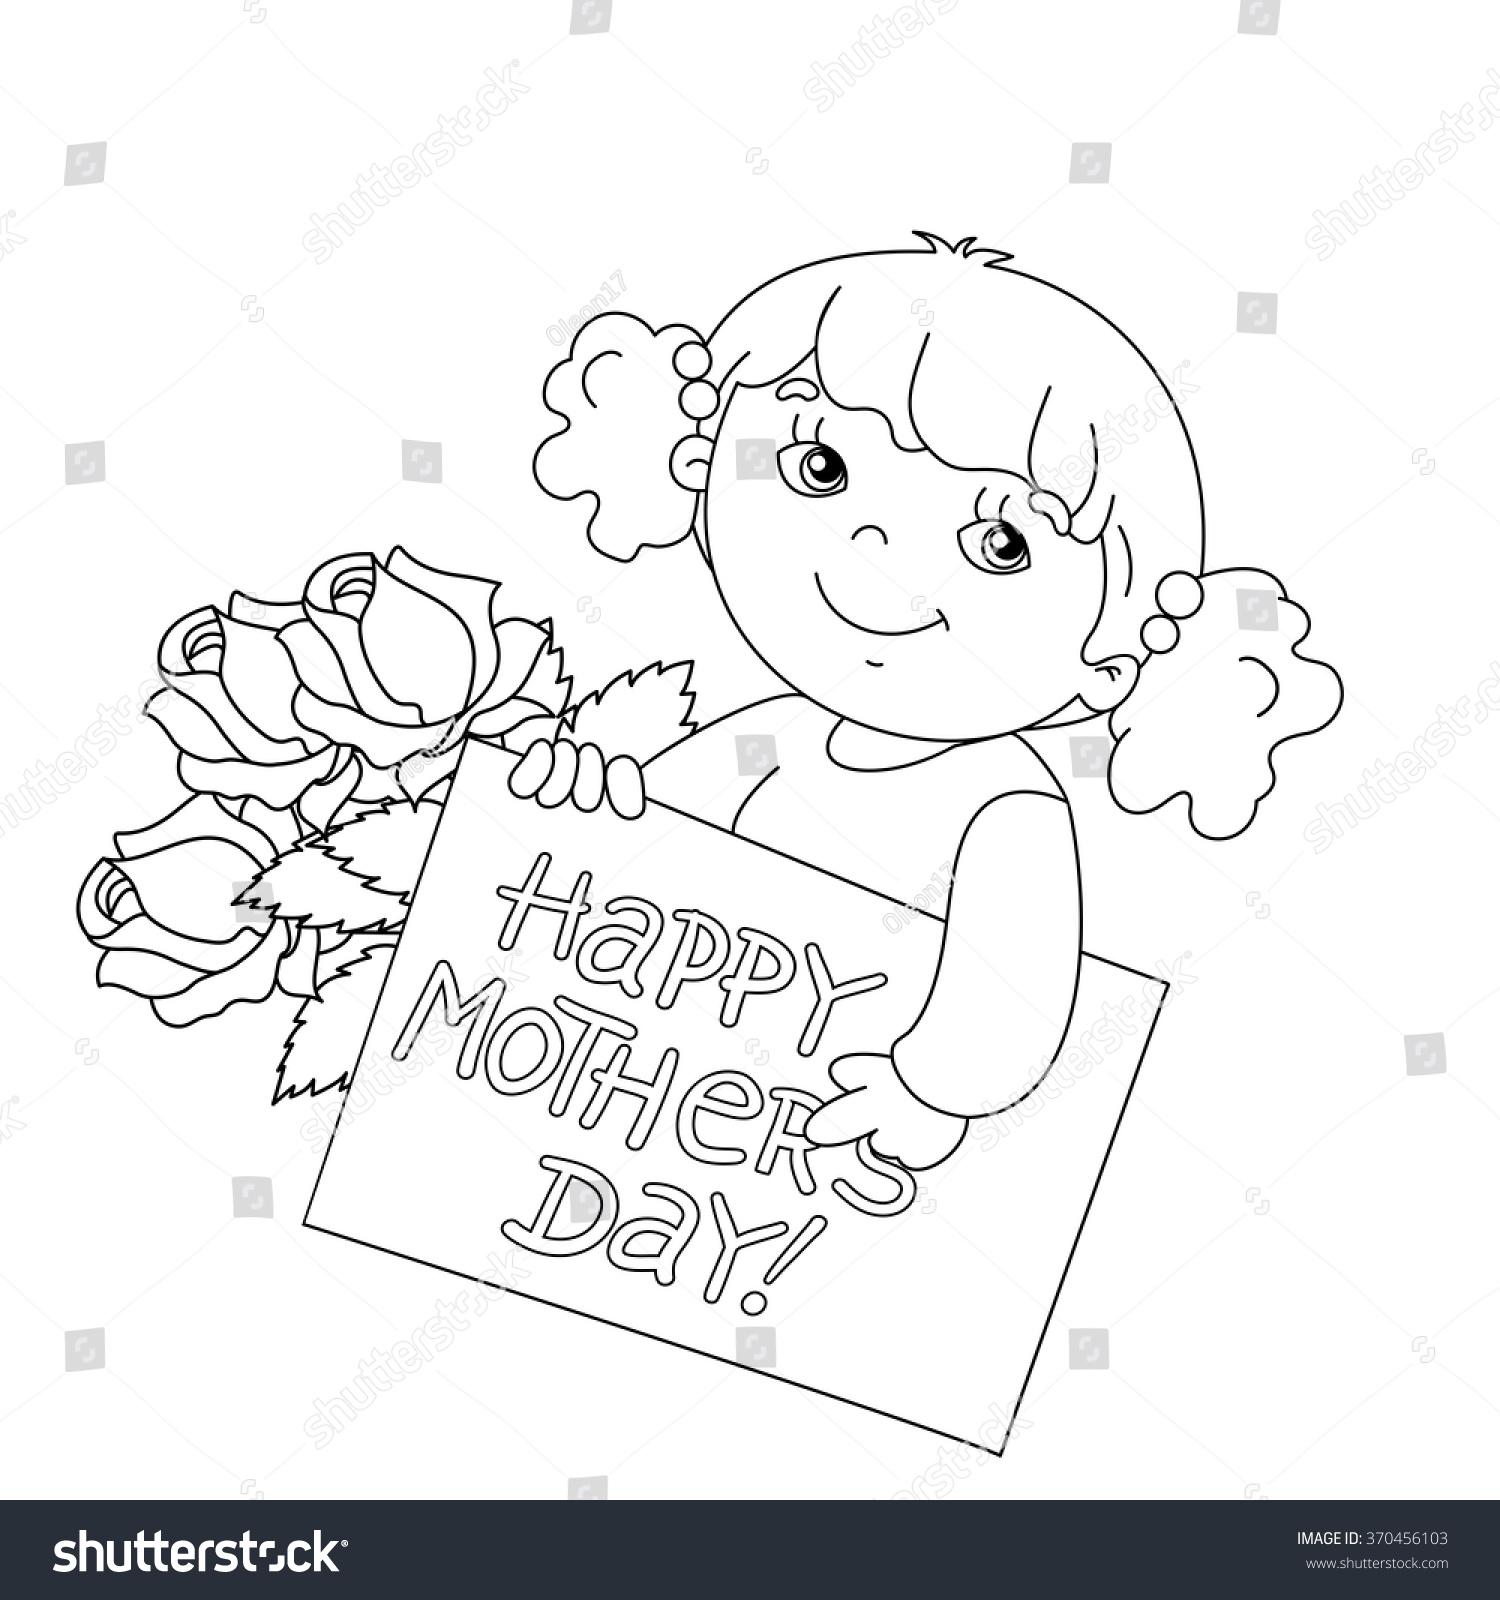 coloring page outline cute card stock vector 370456103